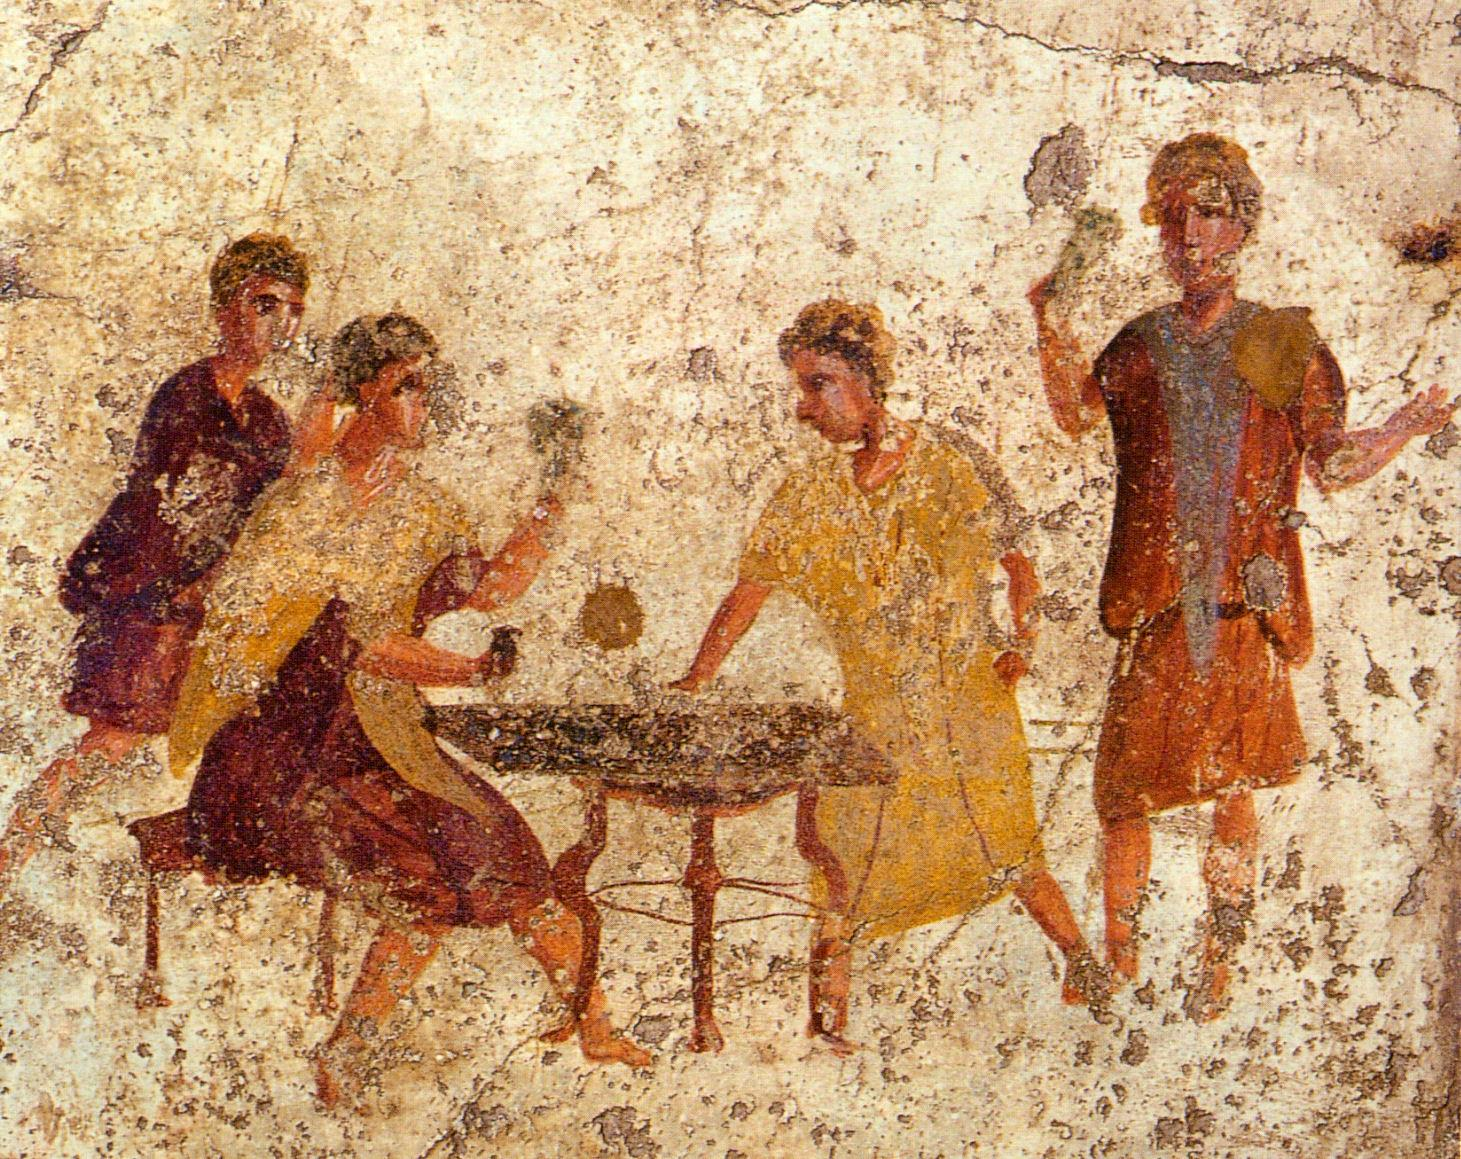 Roman Dice Players